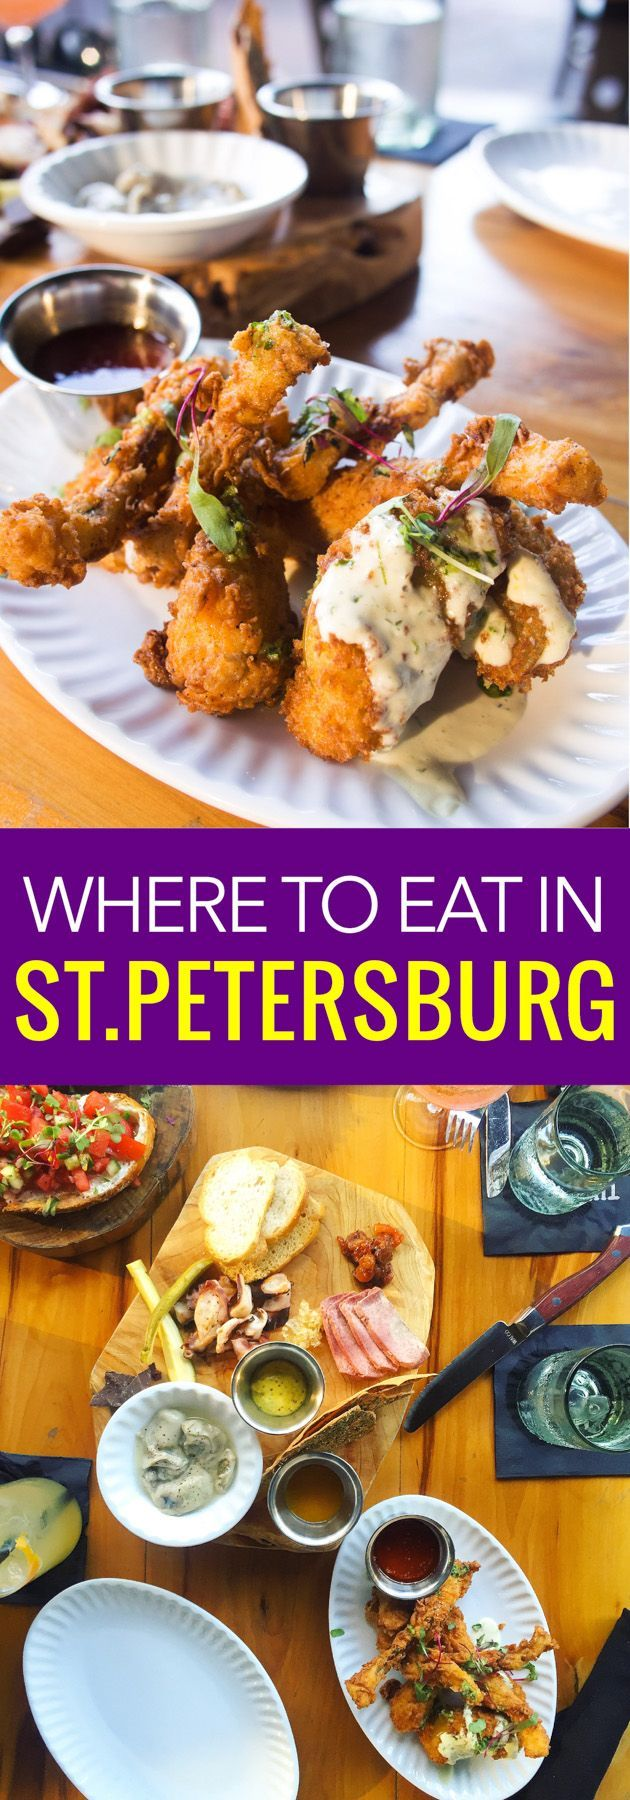 St.Petersburg is a city evolving into one of the best craft beer and food places in Florida. Here are our can't miss restaurants in St. Petersburg.